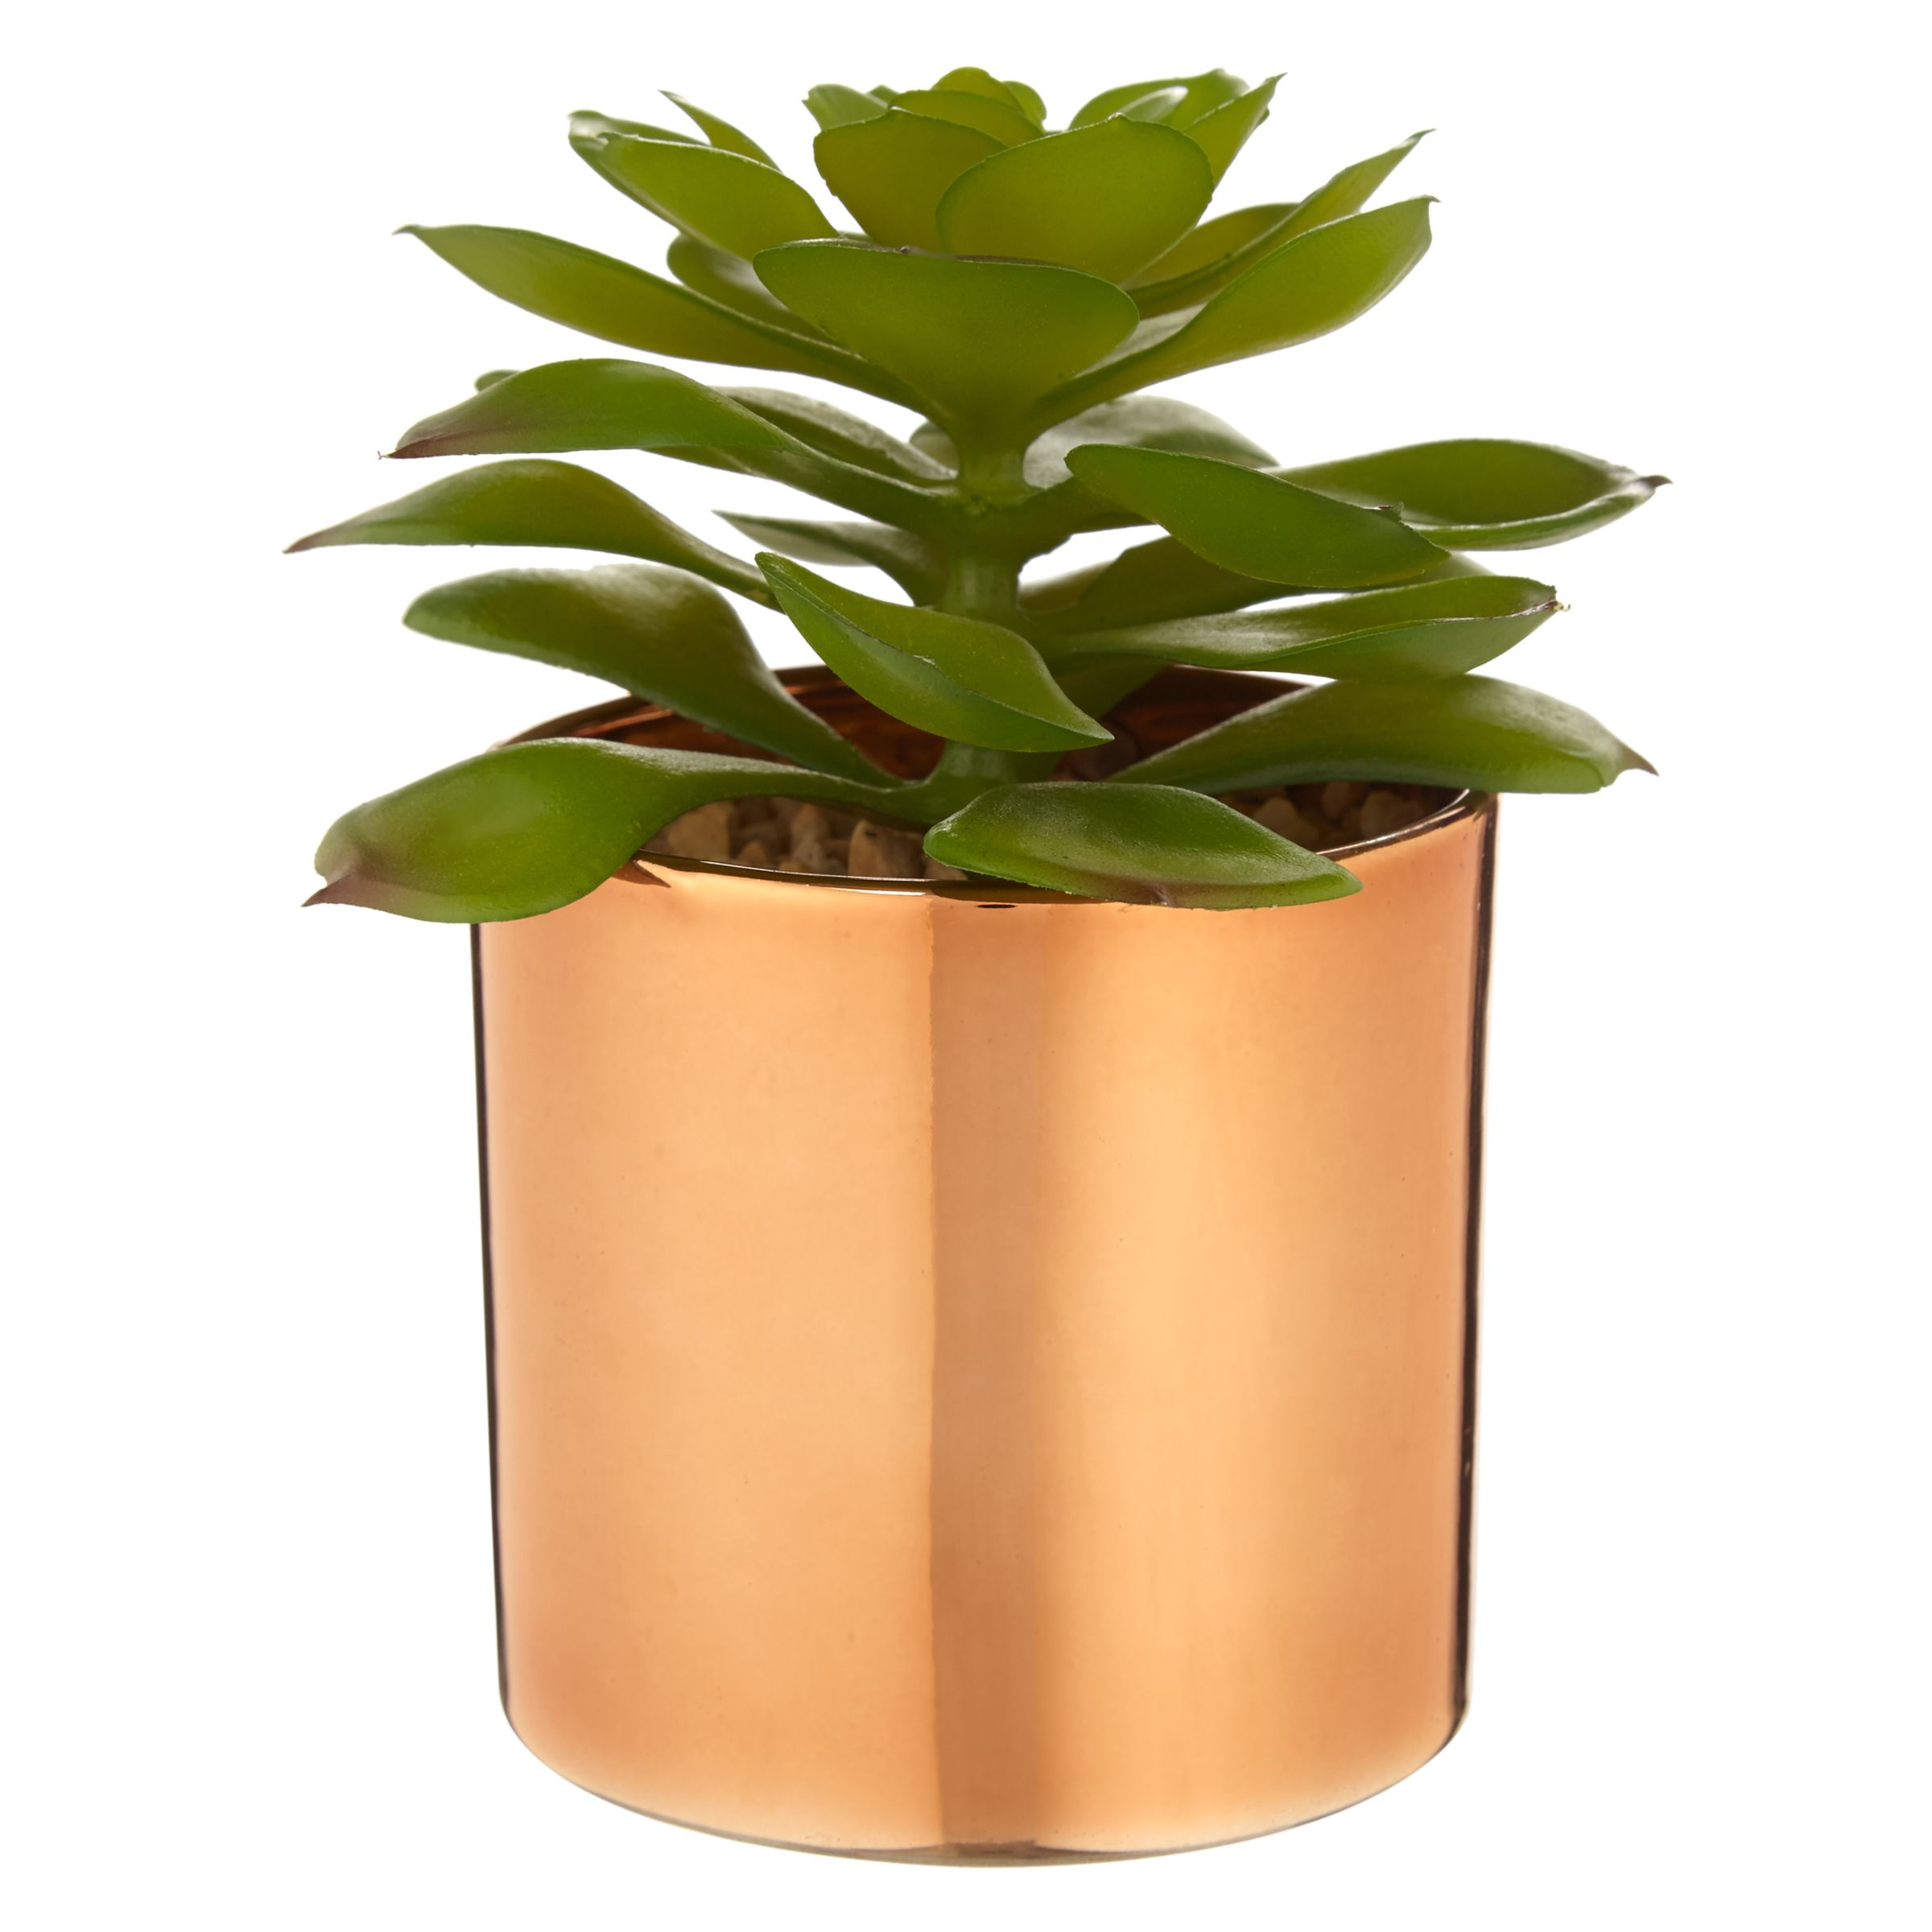 Blumentopf Shop John Lewis & Partners Artificial Cactus In Metallic Pot, 5